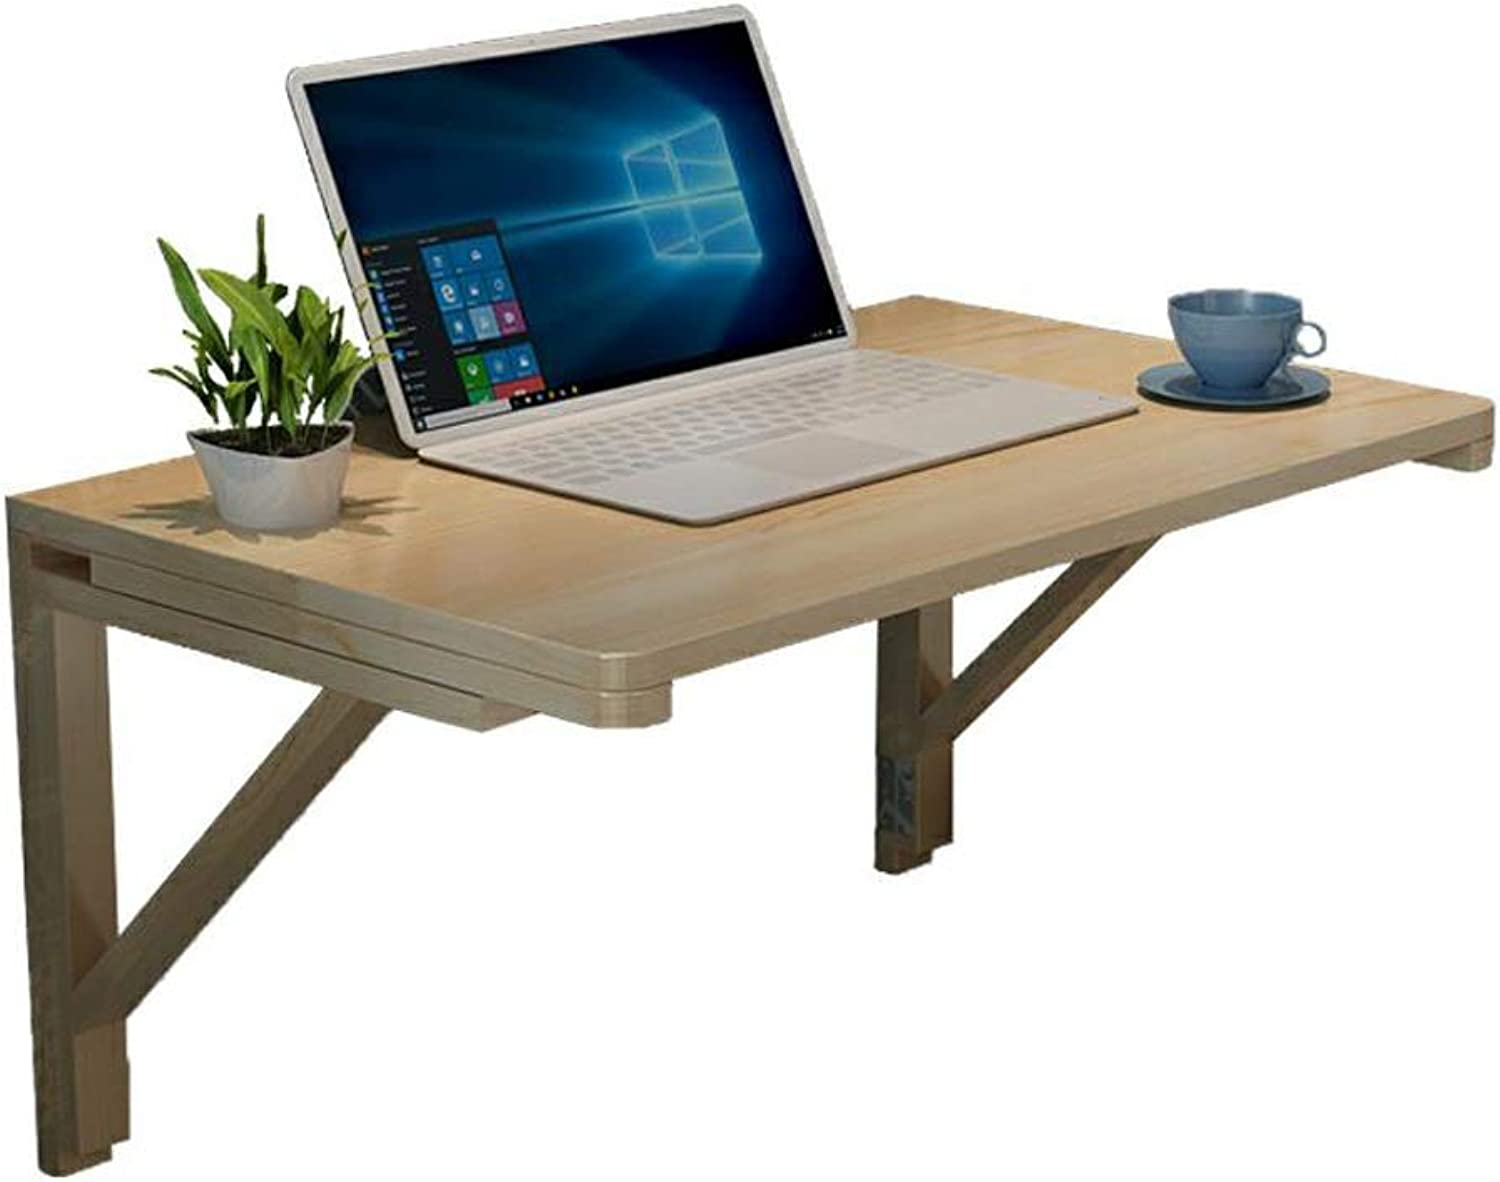 Folding Table by Wall, Solid Wood Wall Hanging Table Computer Table Dining Table Desk, Double Support, Multi-Size (Size   70x40cm)